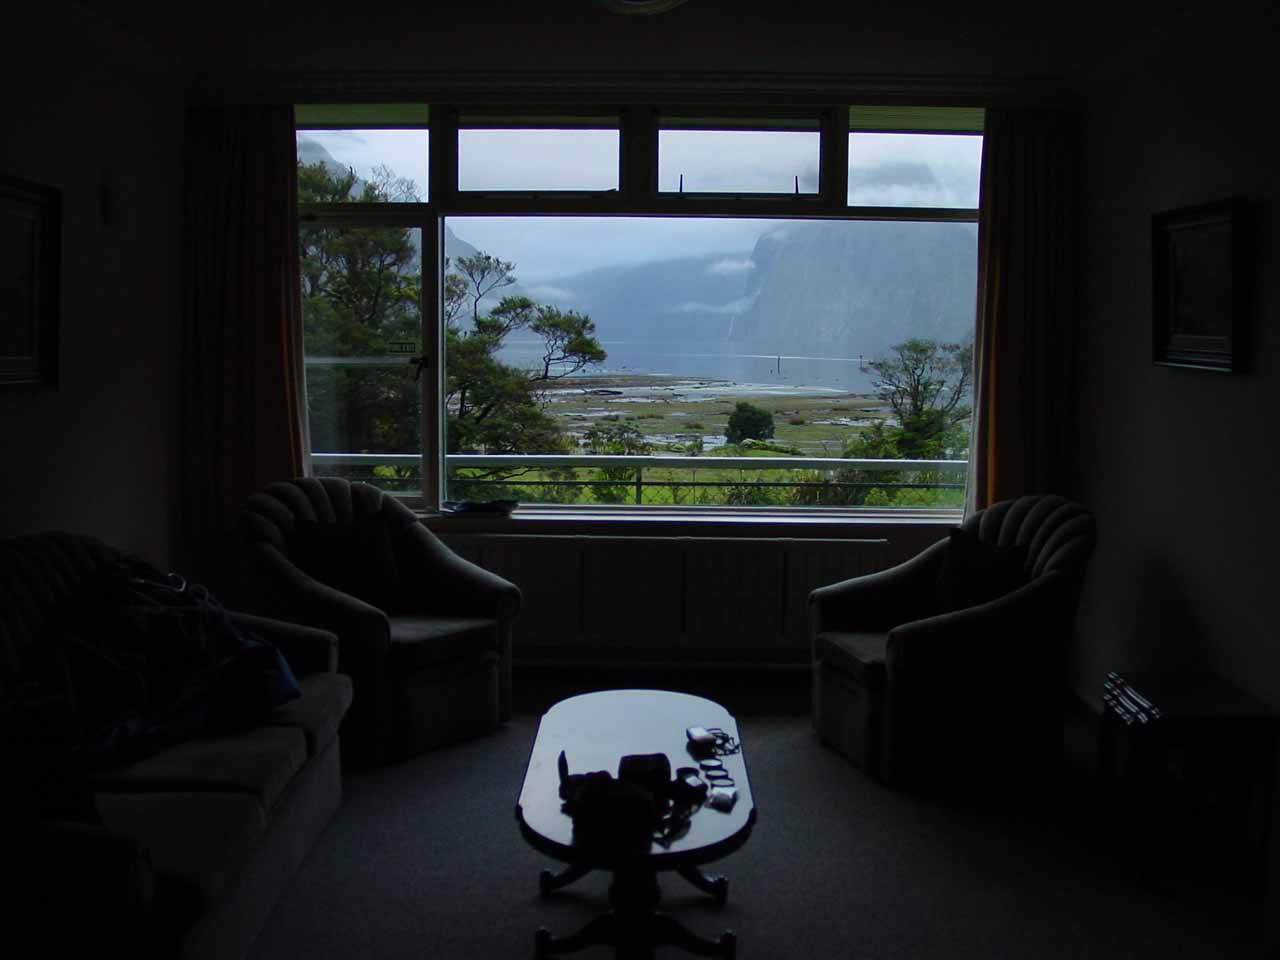 Inside the Mitre Peak Lodge